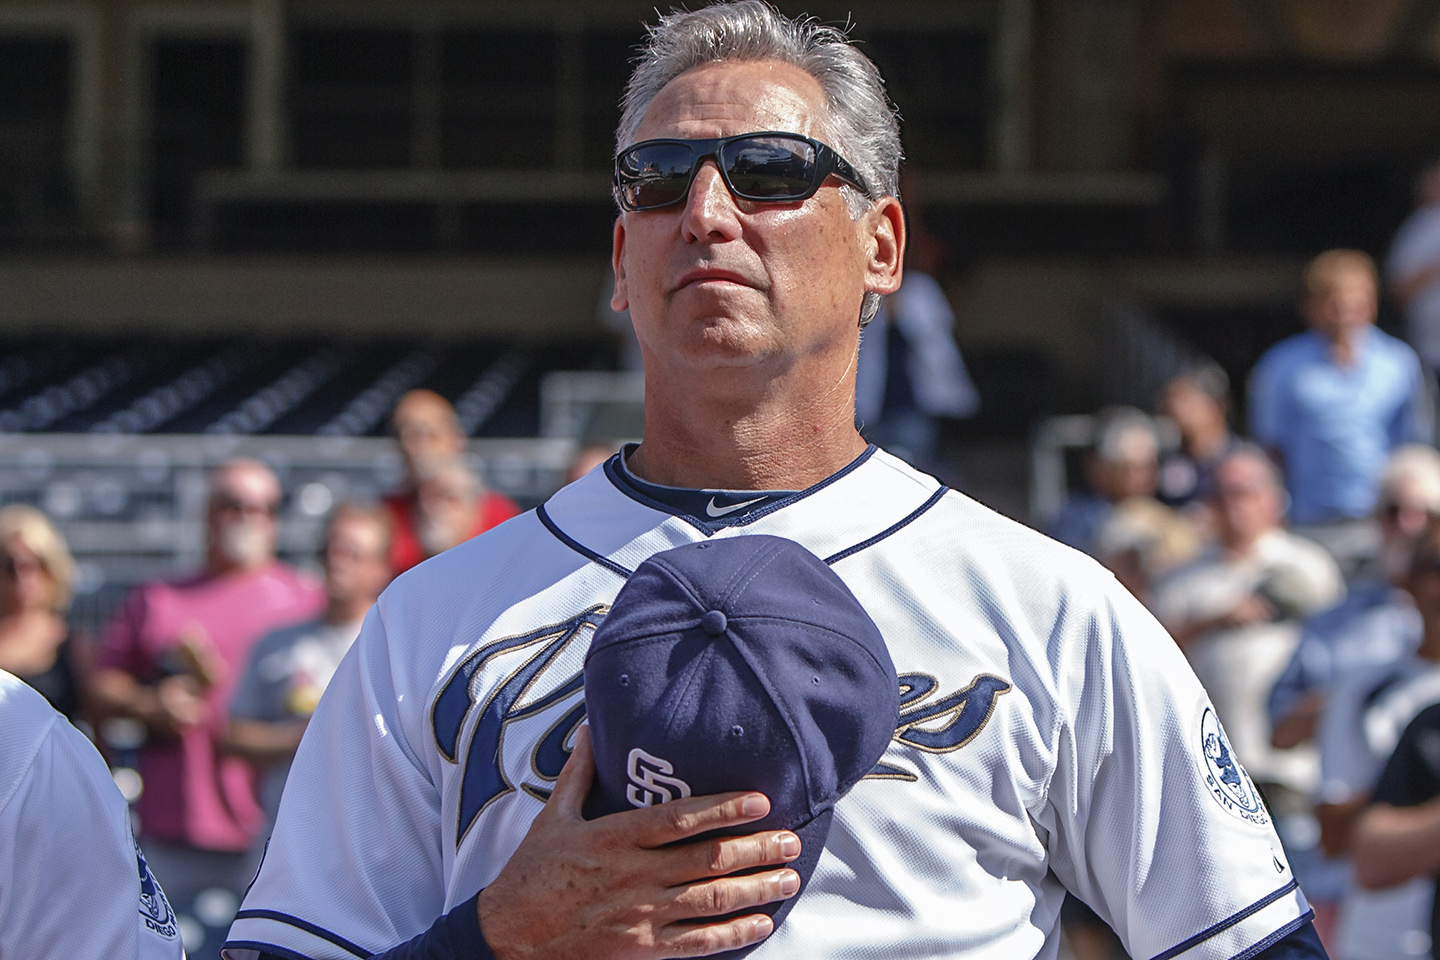 The San Diego Padres cut ties on Monday with manager Bud Black. File photo by Bill Reilly